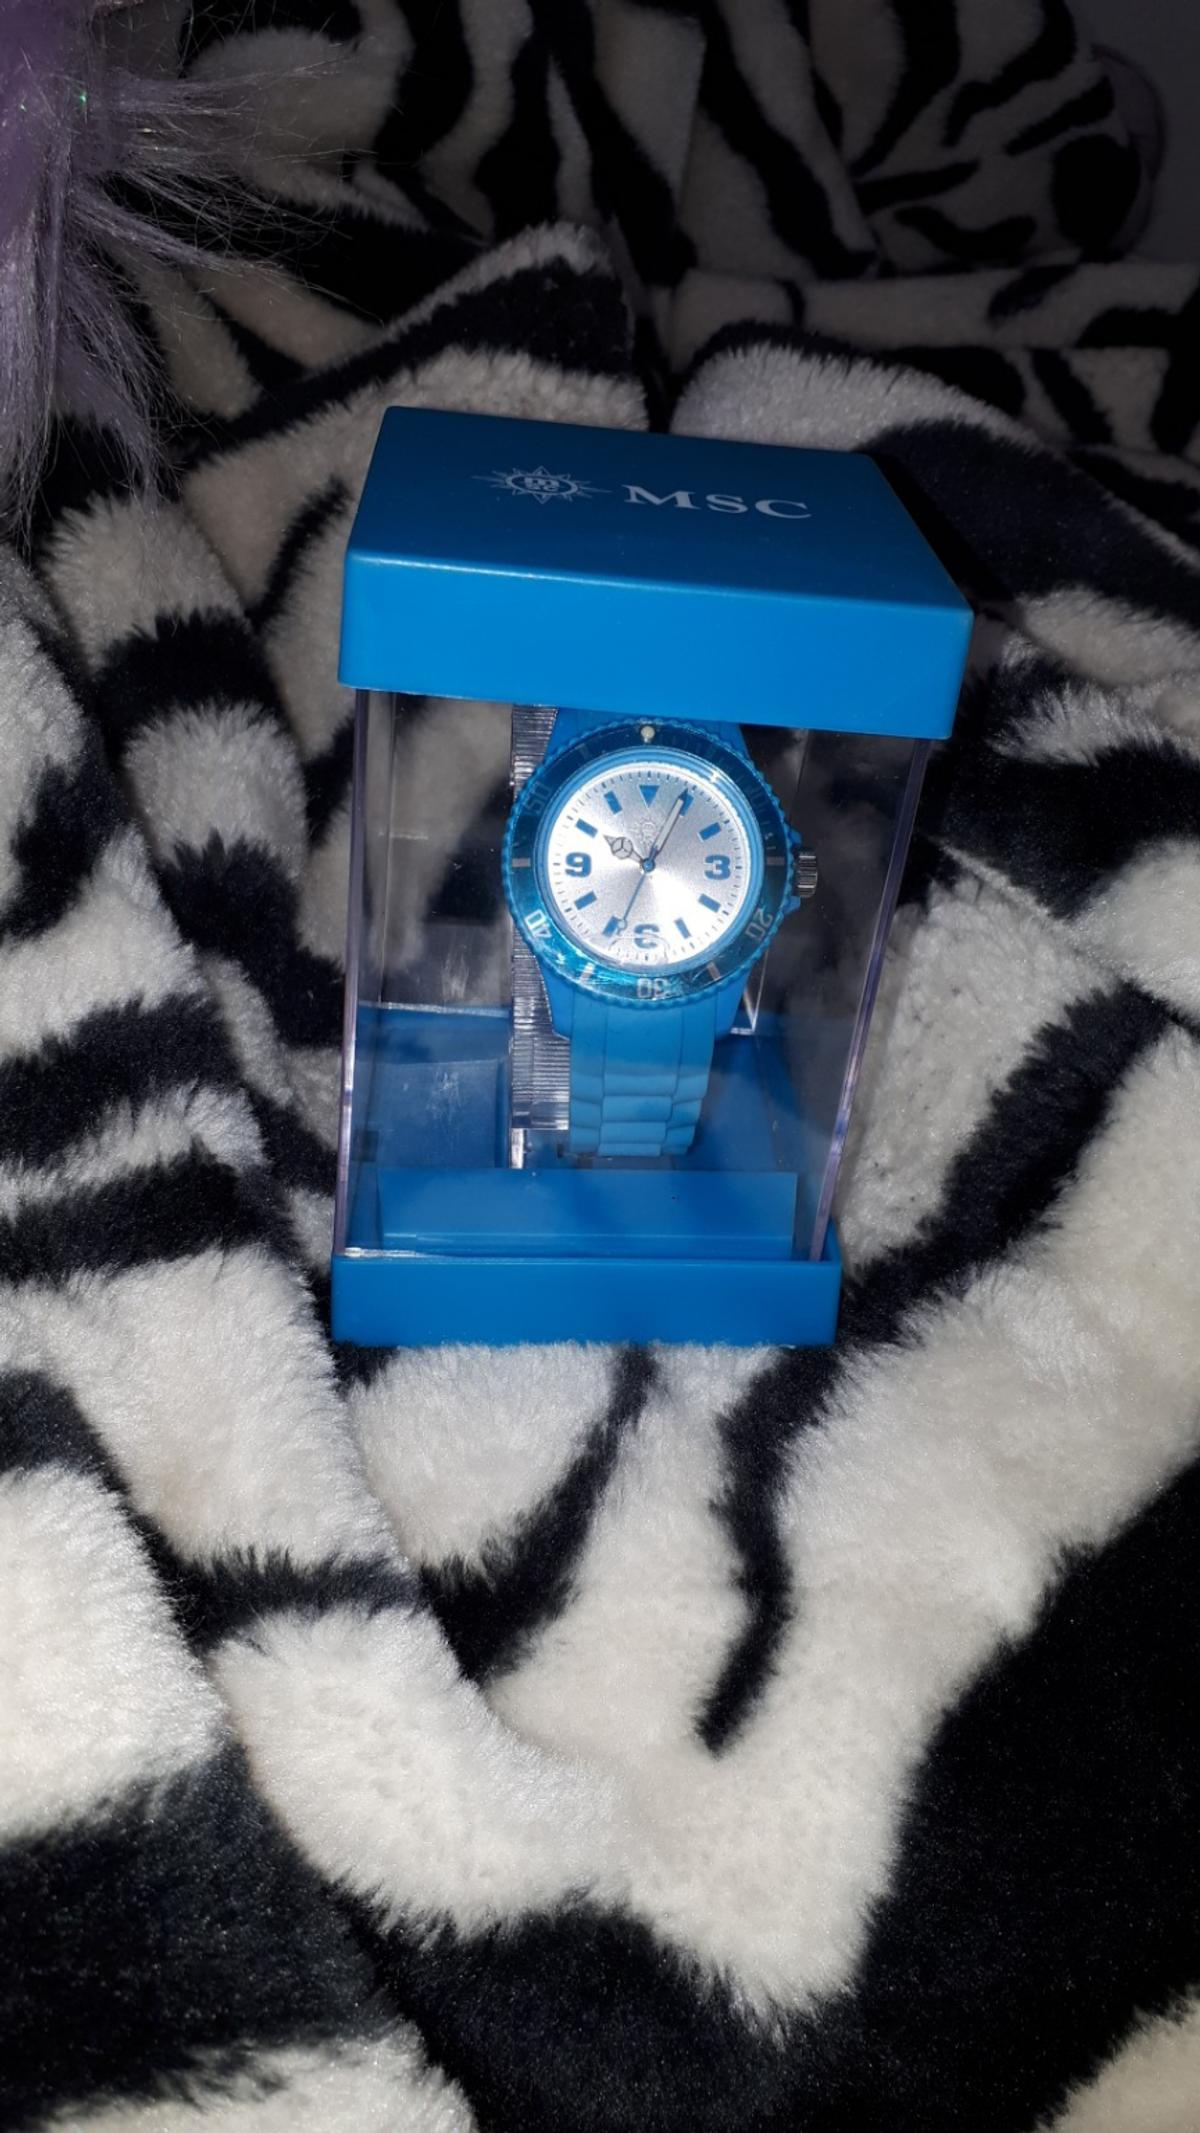 hello everyone you are looking at her MSC brand new cruise watch this is brand new in the box big face beautiful colour collectable